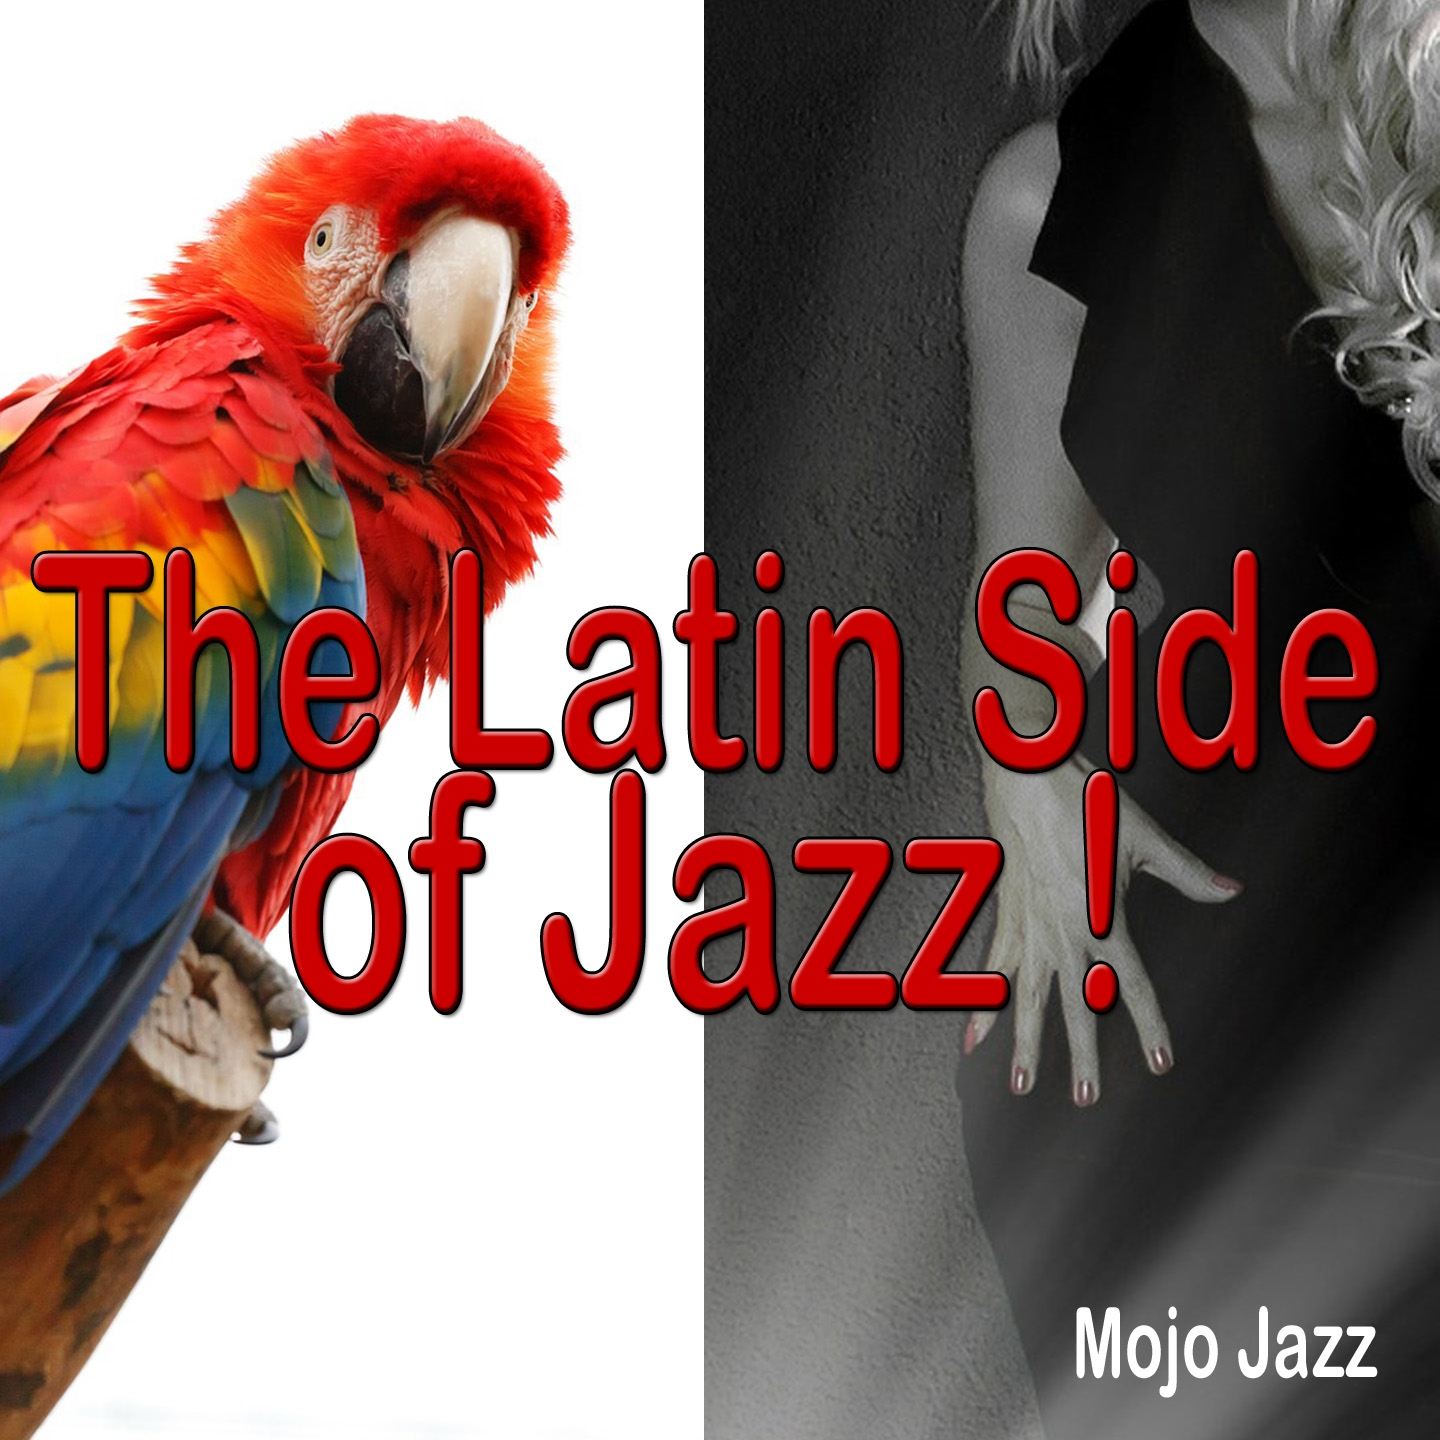 The Latin Side of Jazz!